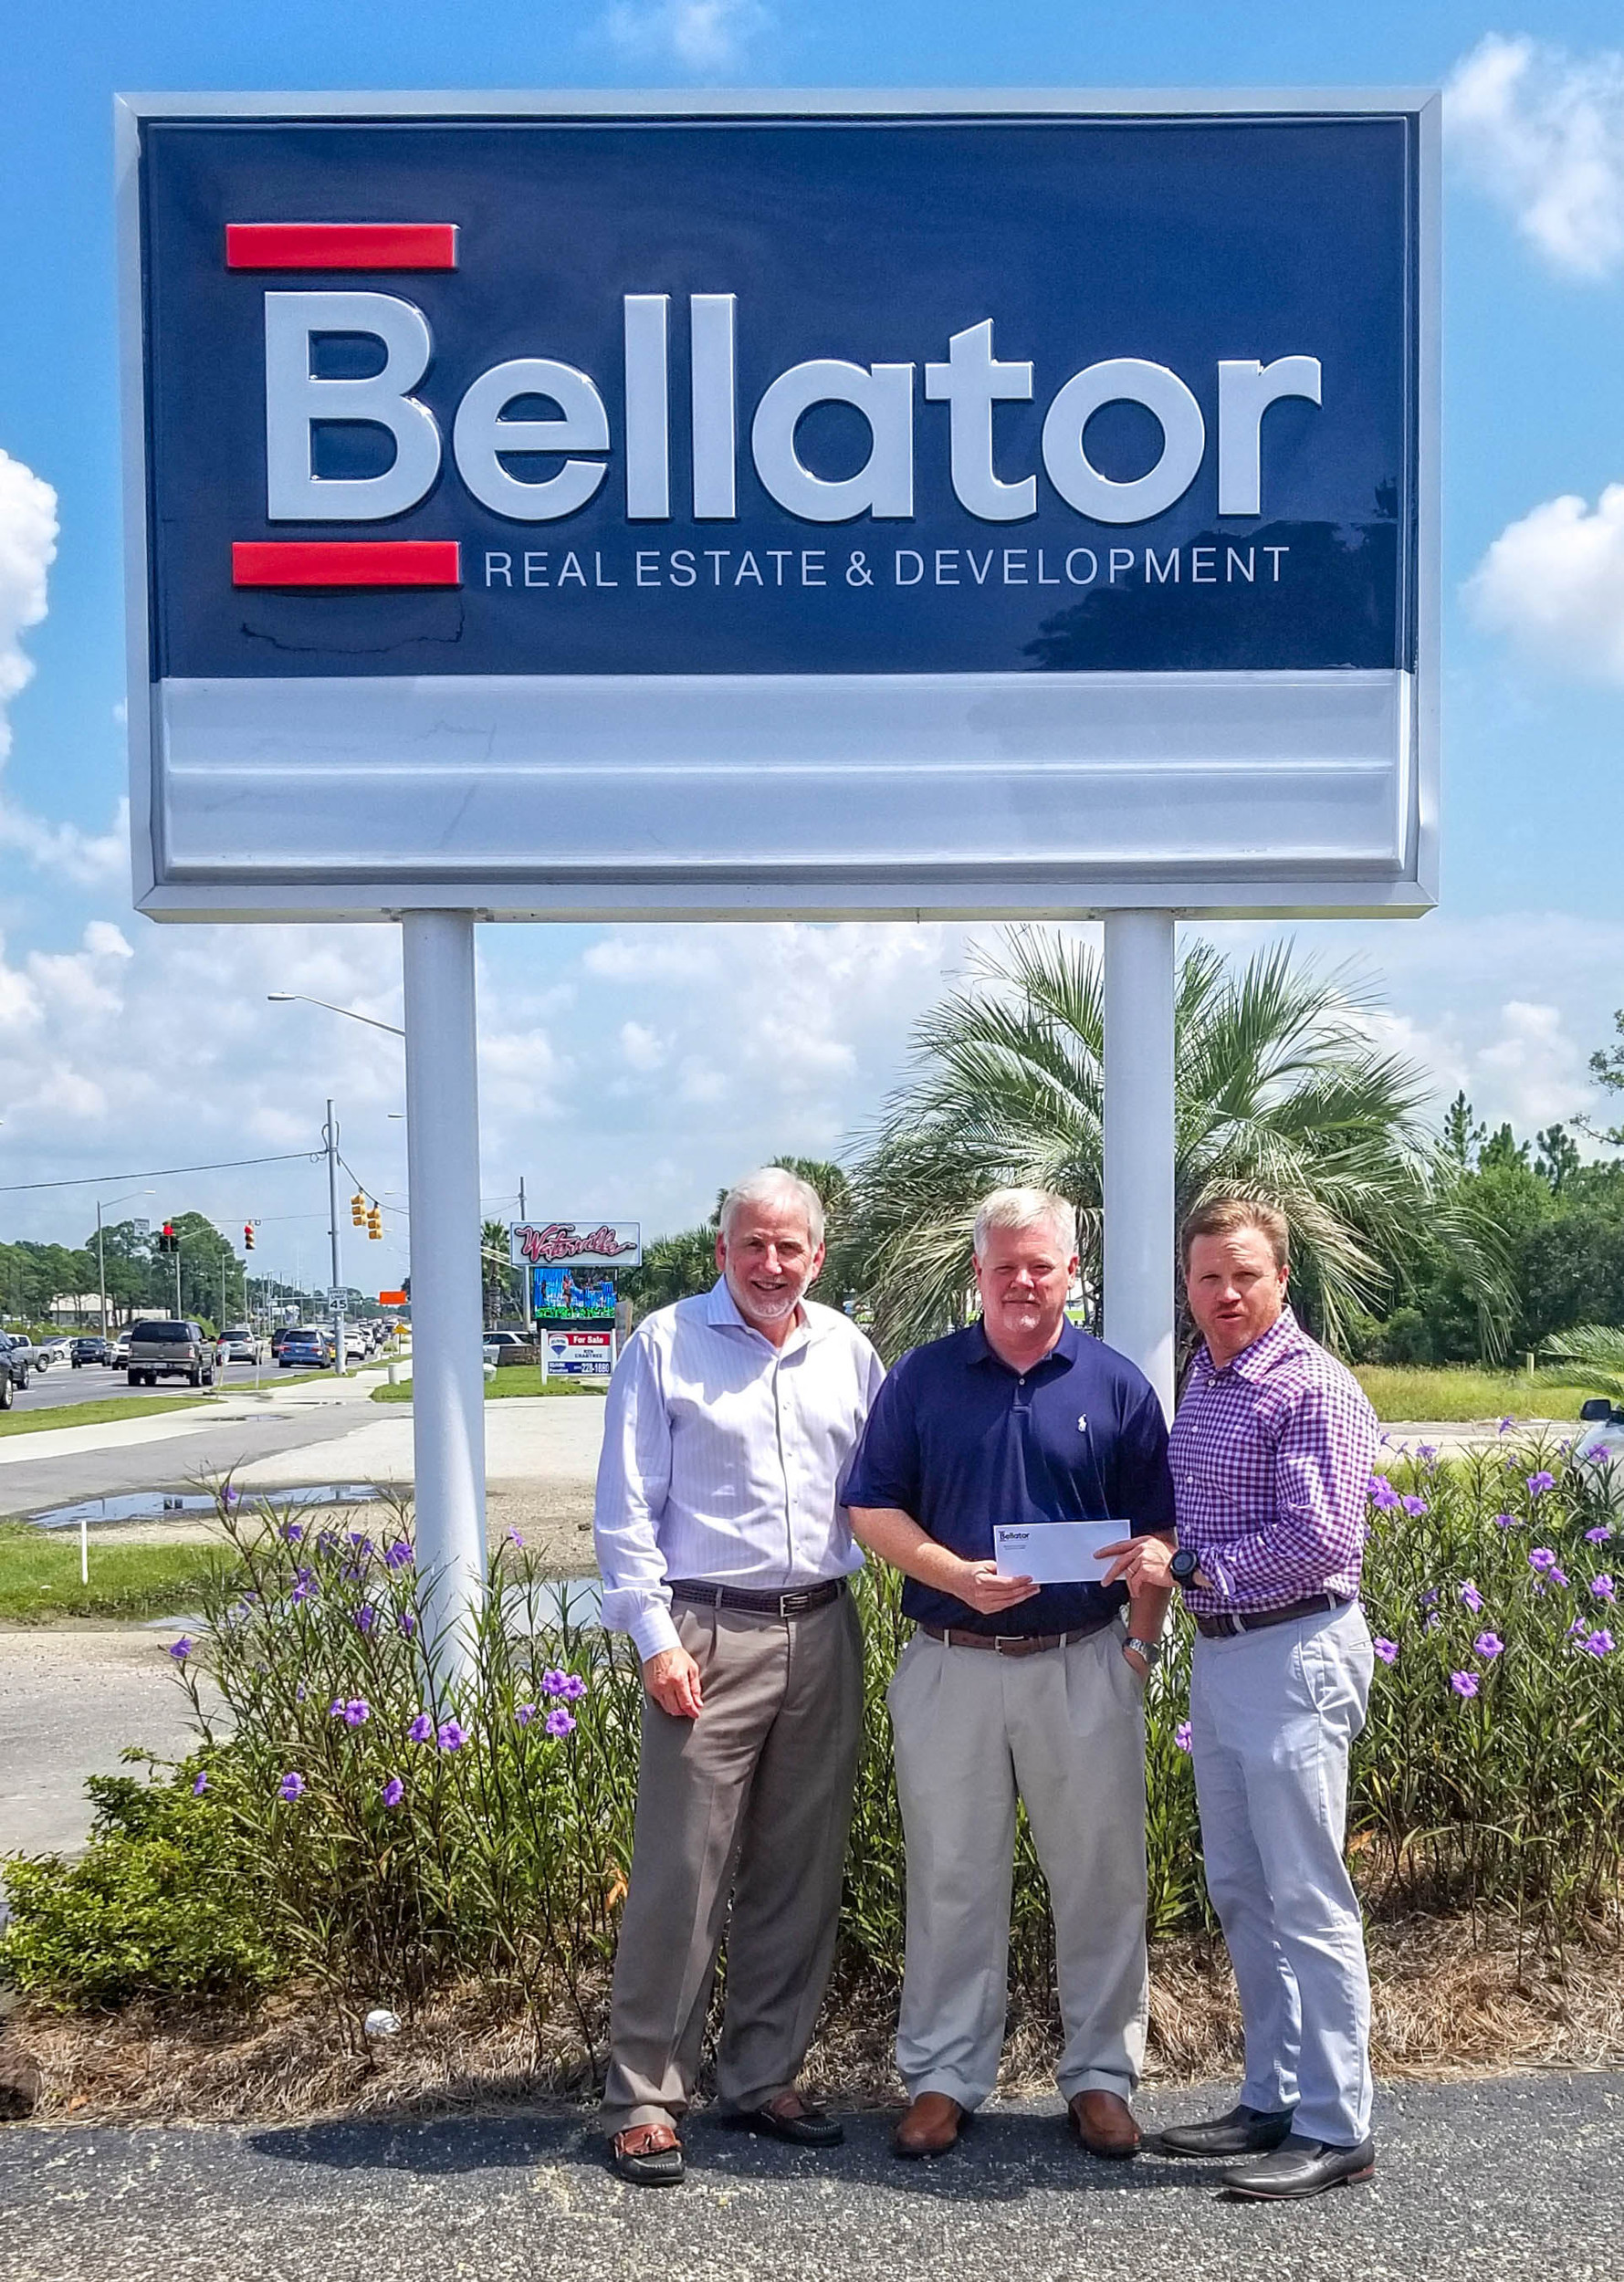 Bellator Real Estate & Development acquires Triple Option Properties: From left, Bellator Gulf Shores Managing Broker Frank Malone, REALTOR® Brad Chambers, formerly of Triple Option Properties, and Bellator President Troy Wilson stand in front of the Gulf Shore's office sign.